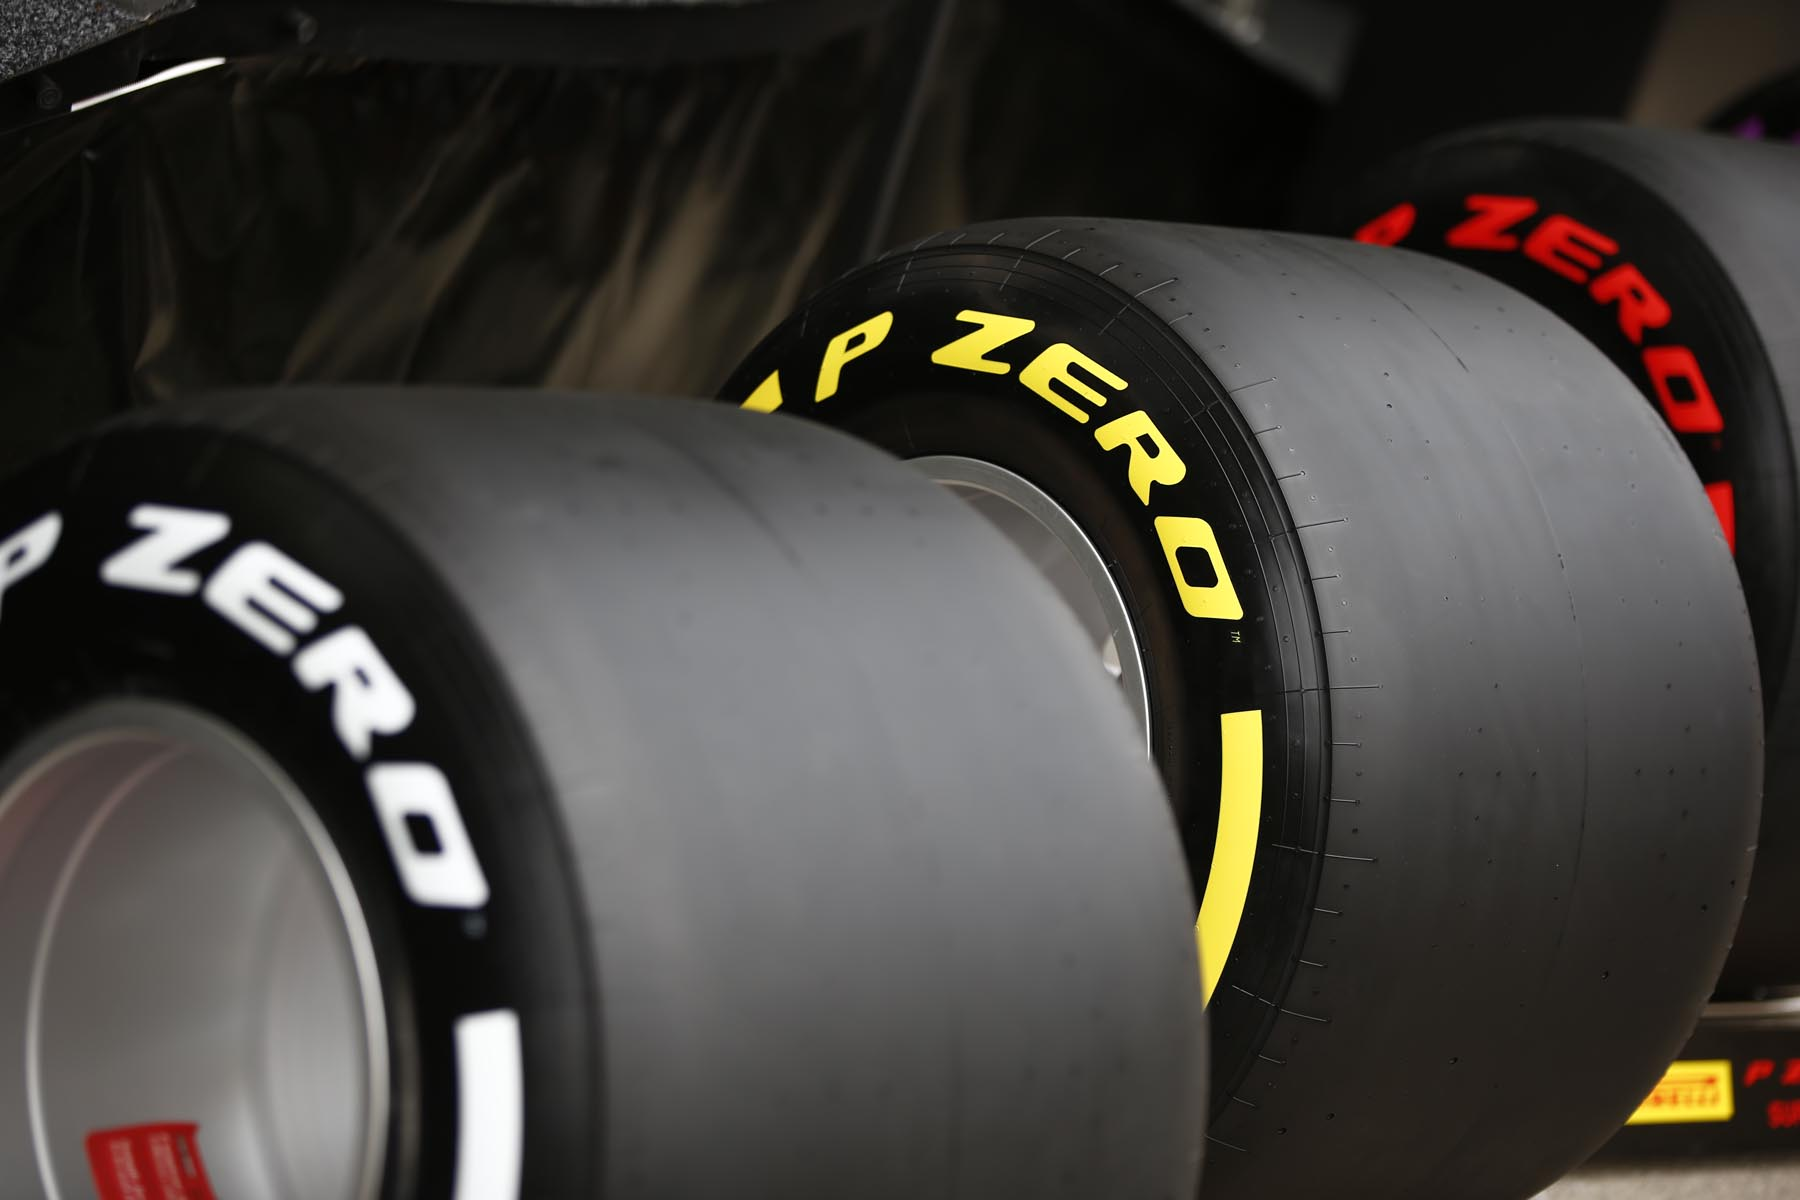 Pirelli's medium, soft and supersoft-compound tyres at the 2018 Spanish Grand Prix.